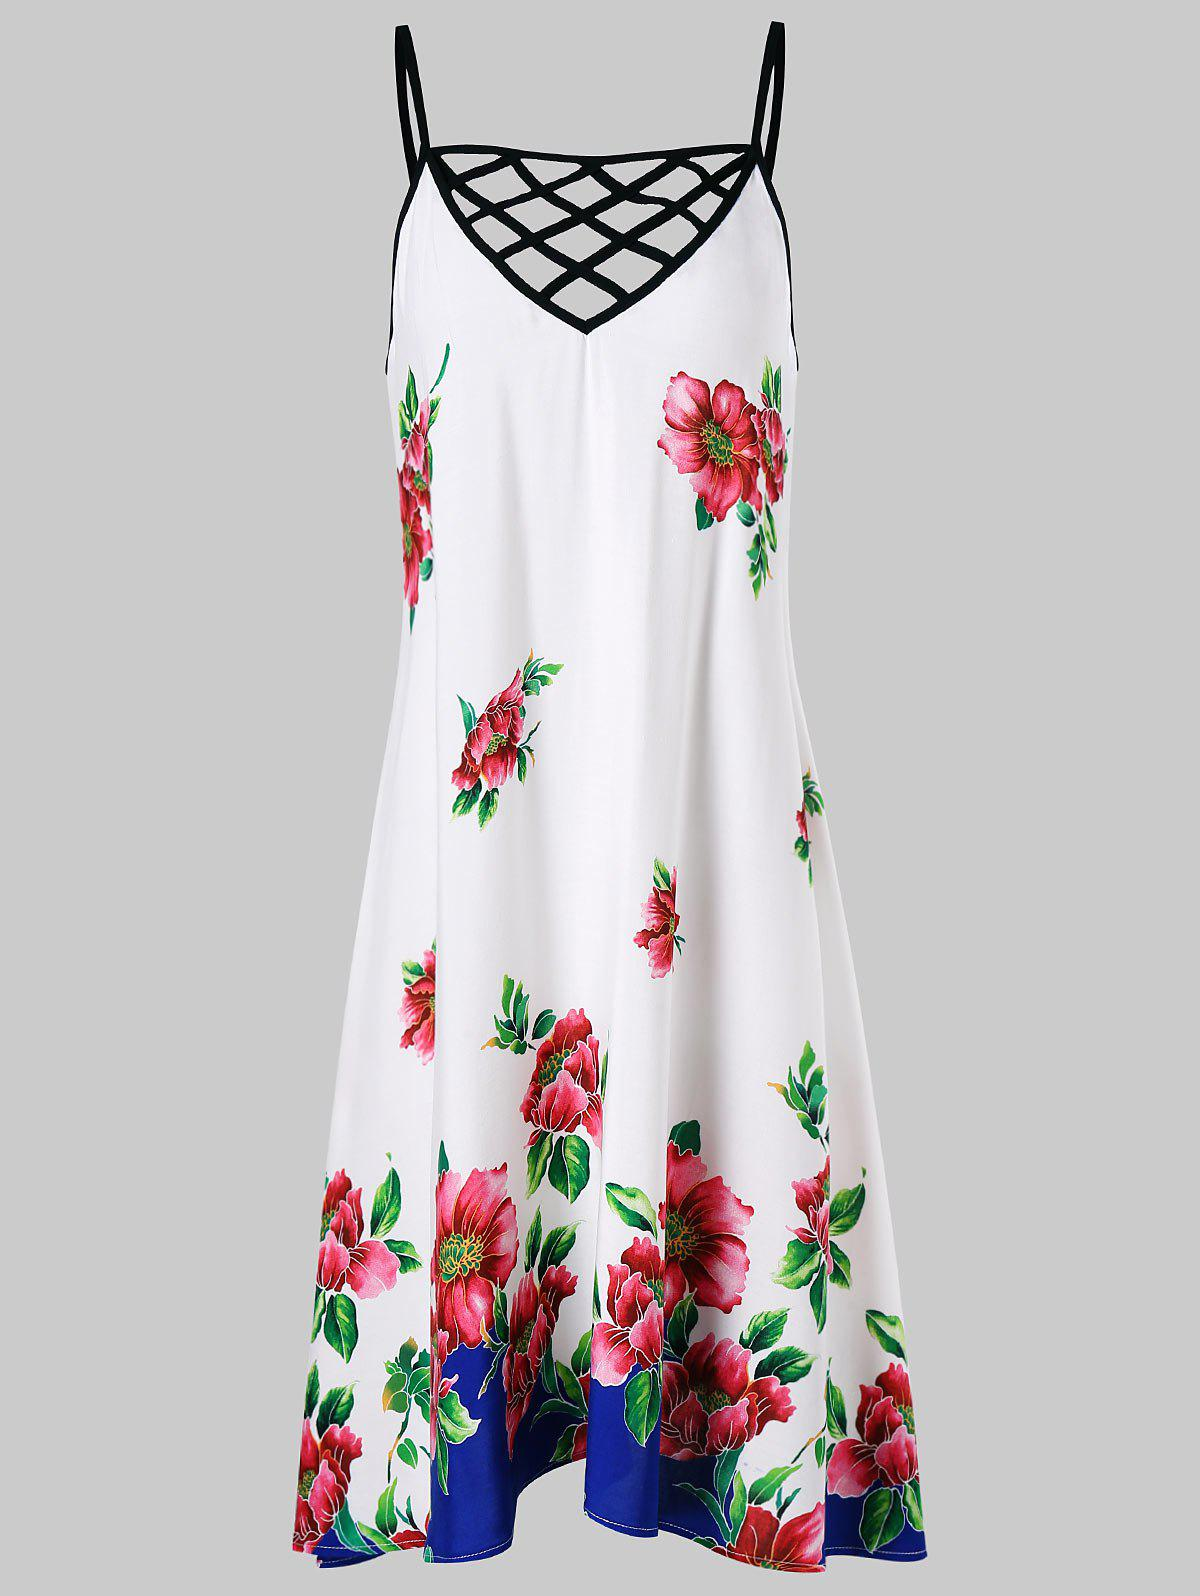 Chic Criss Cross Floral Cami Dress